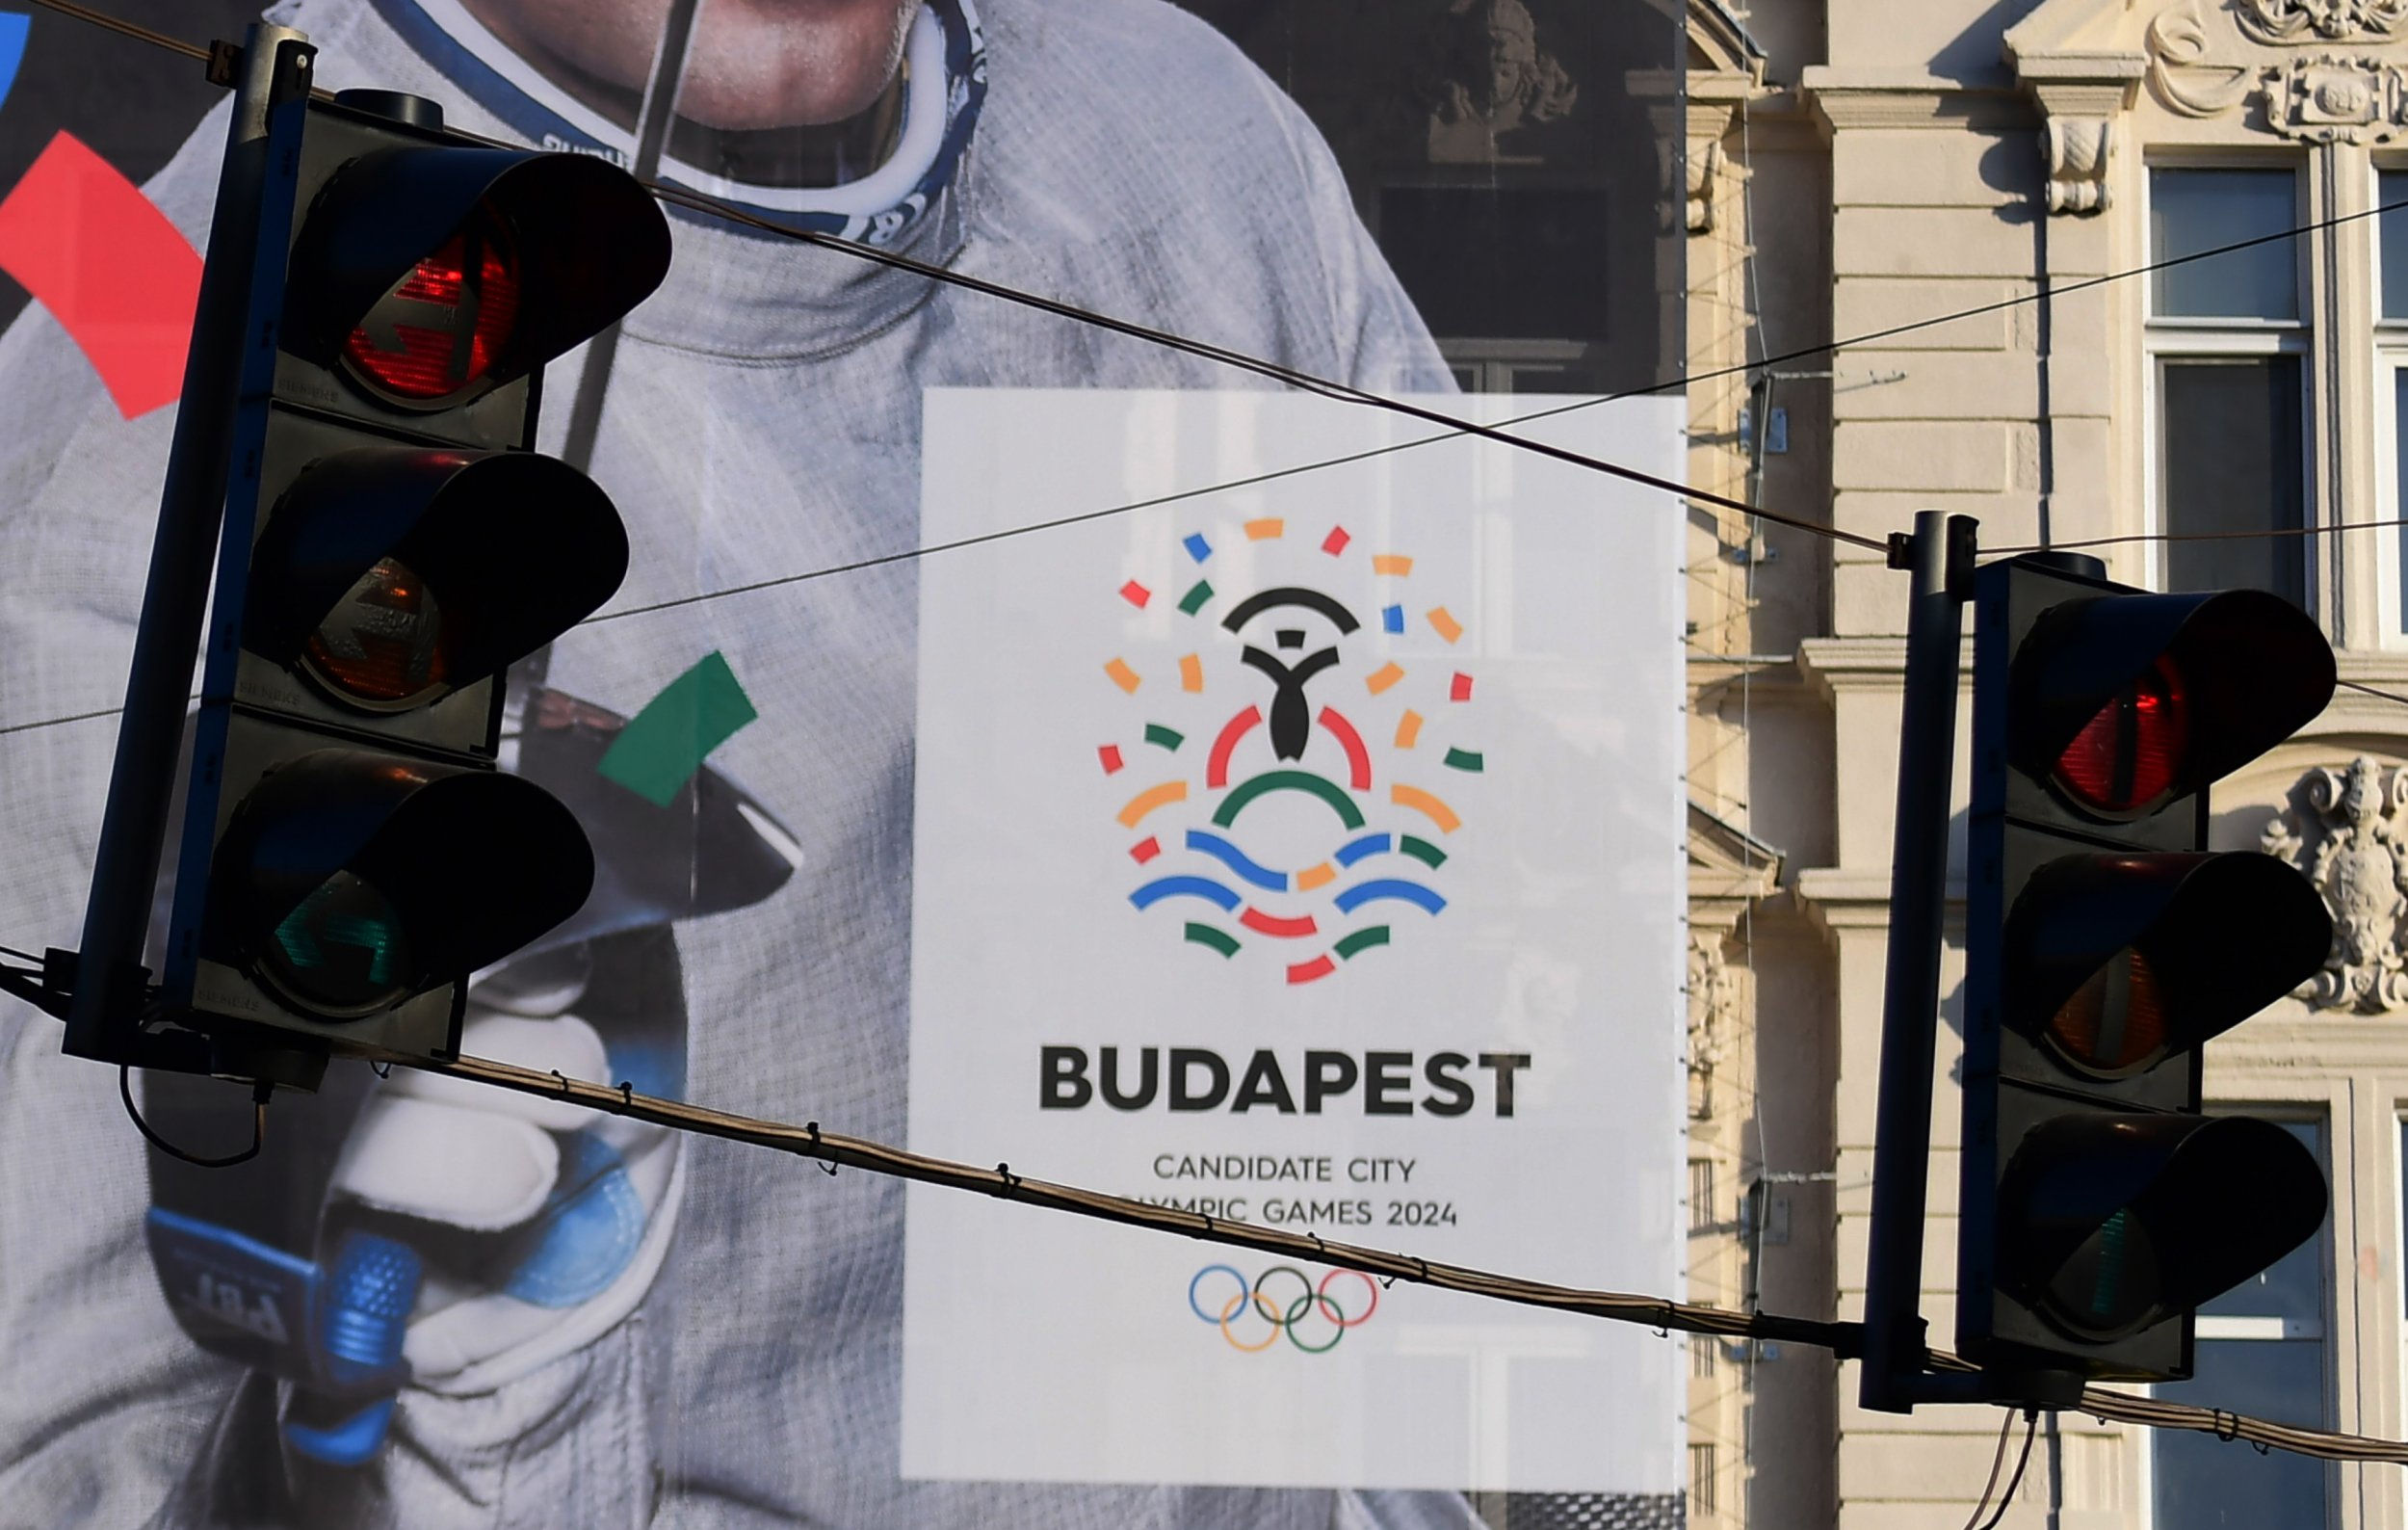 An advertisment for Budapest's bid to host the 2024 Olympic Games in Budapest, Hungary.